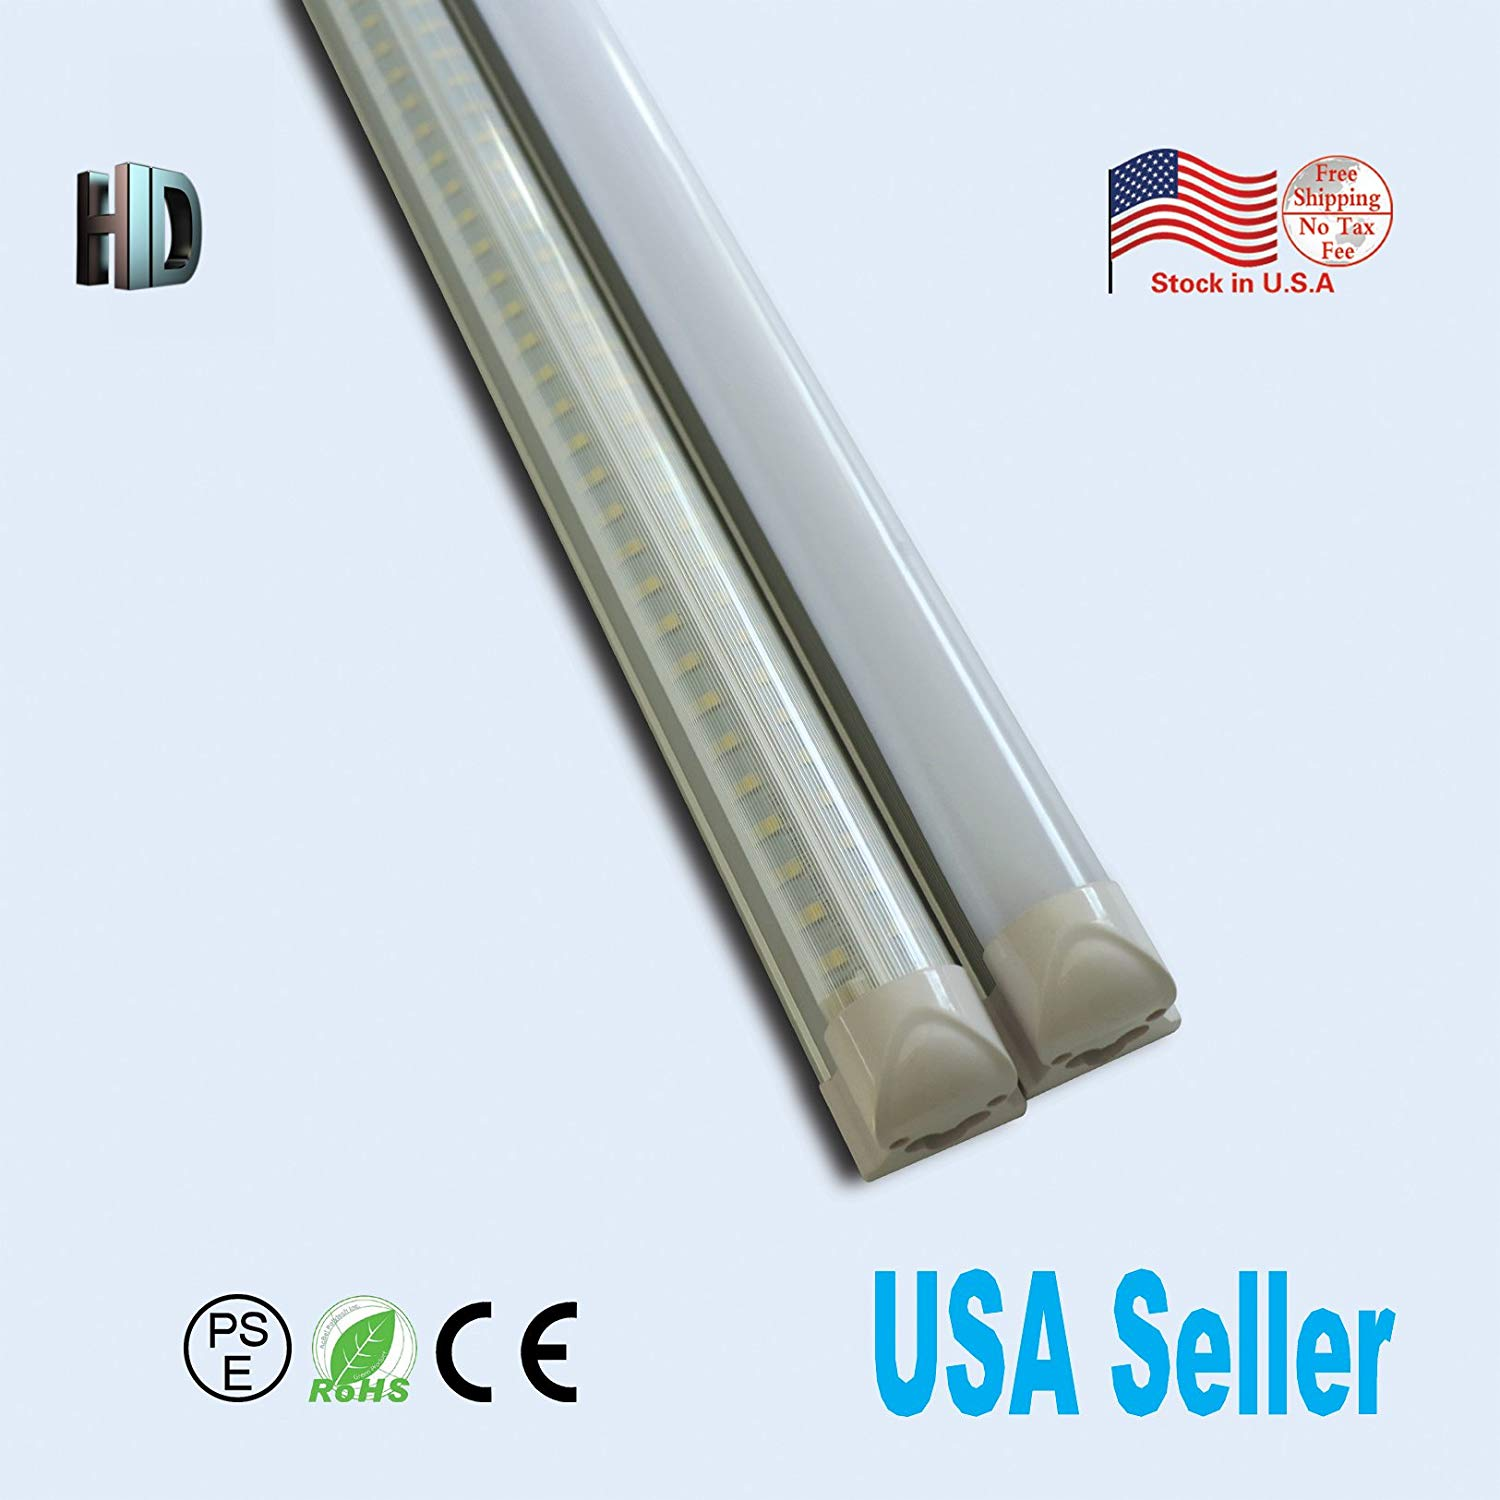 25 PACK LED T8 Integrated v shaped tube 5ft 30W AC110-277V LED Bulb tube Lamp striped cover with 5700K LED Light tube SMD2835 chip high brightness T8 integrated v shaped tube lamp